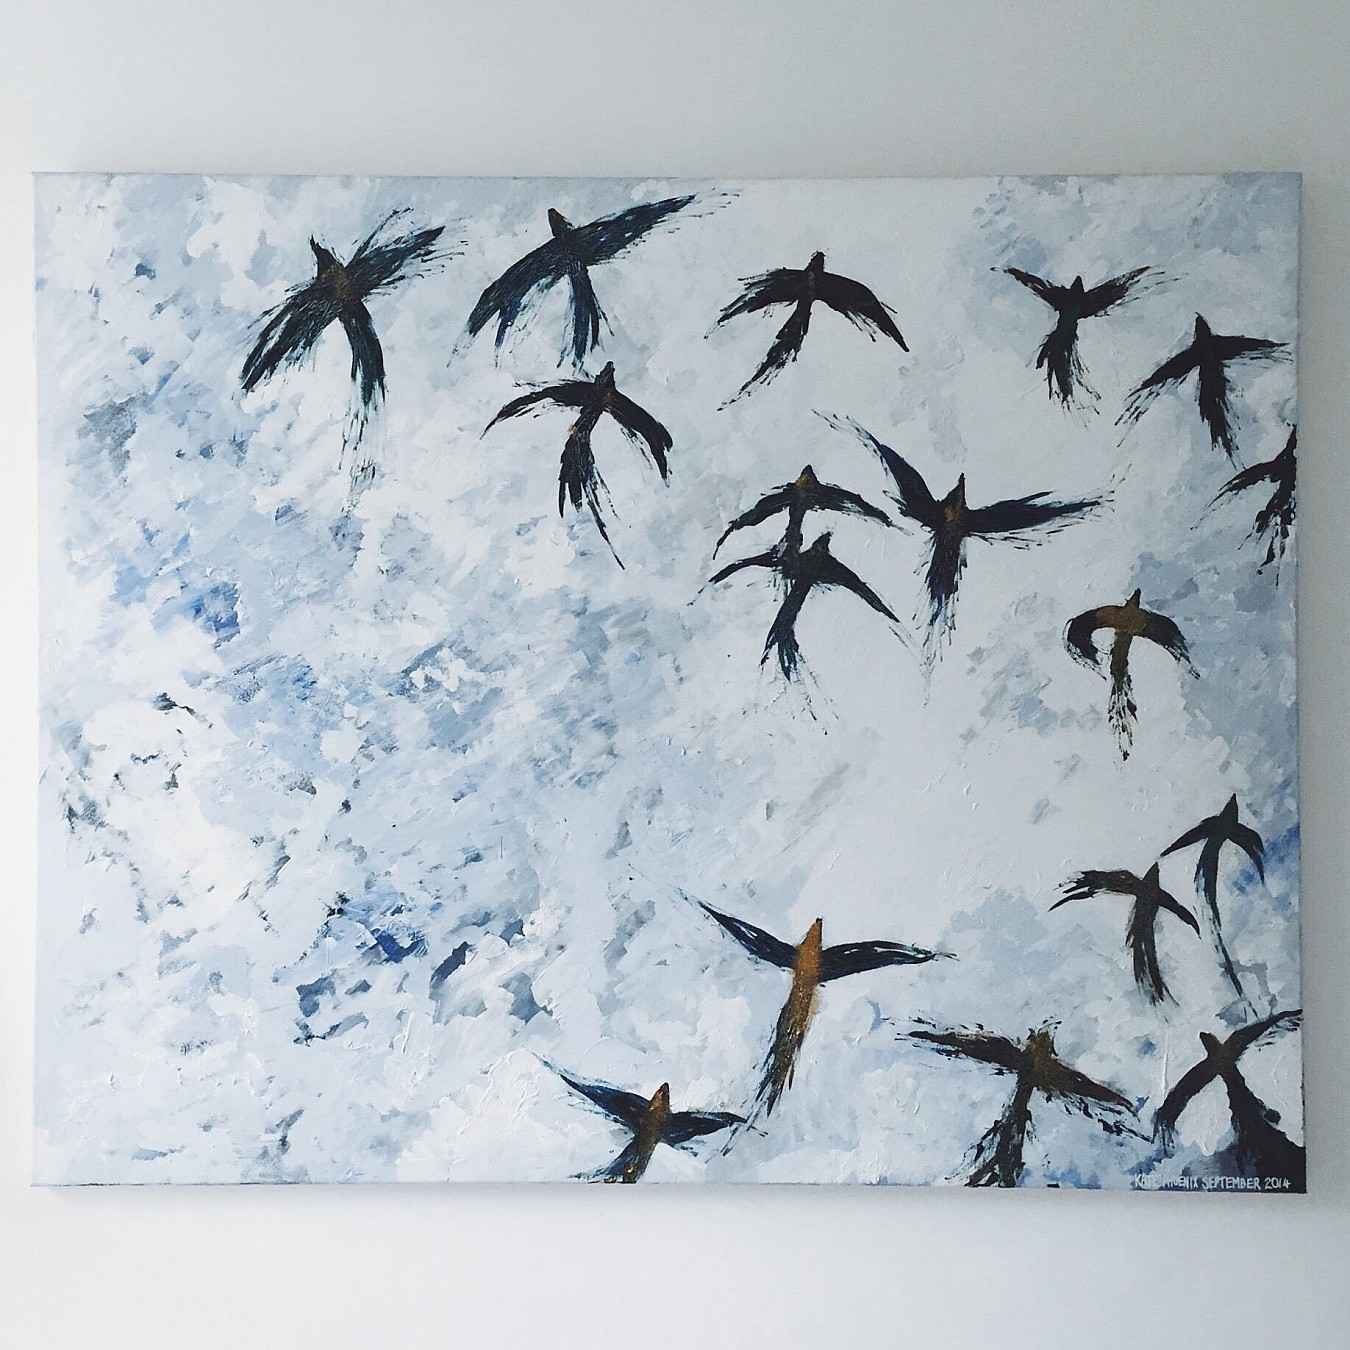 A painting of a flock of birds by Kate Phoenix.